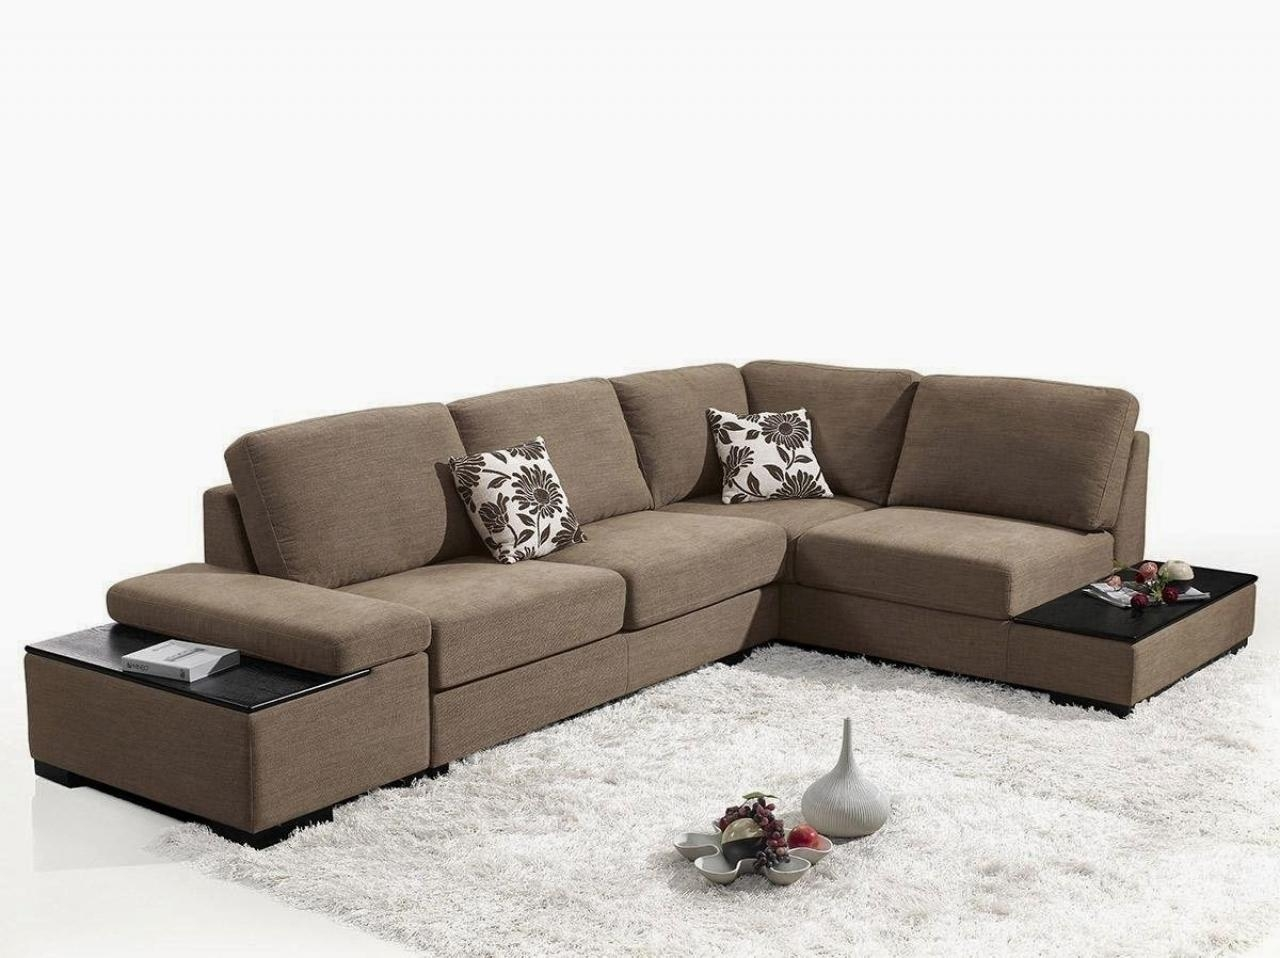 Awesome Sectional Sofa Fold Out Bed – Sectional Sofas And Couches Regarding Pull Out Sectional (Image 2 of 20)